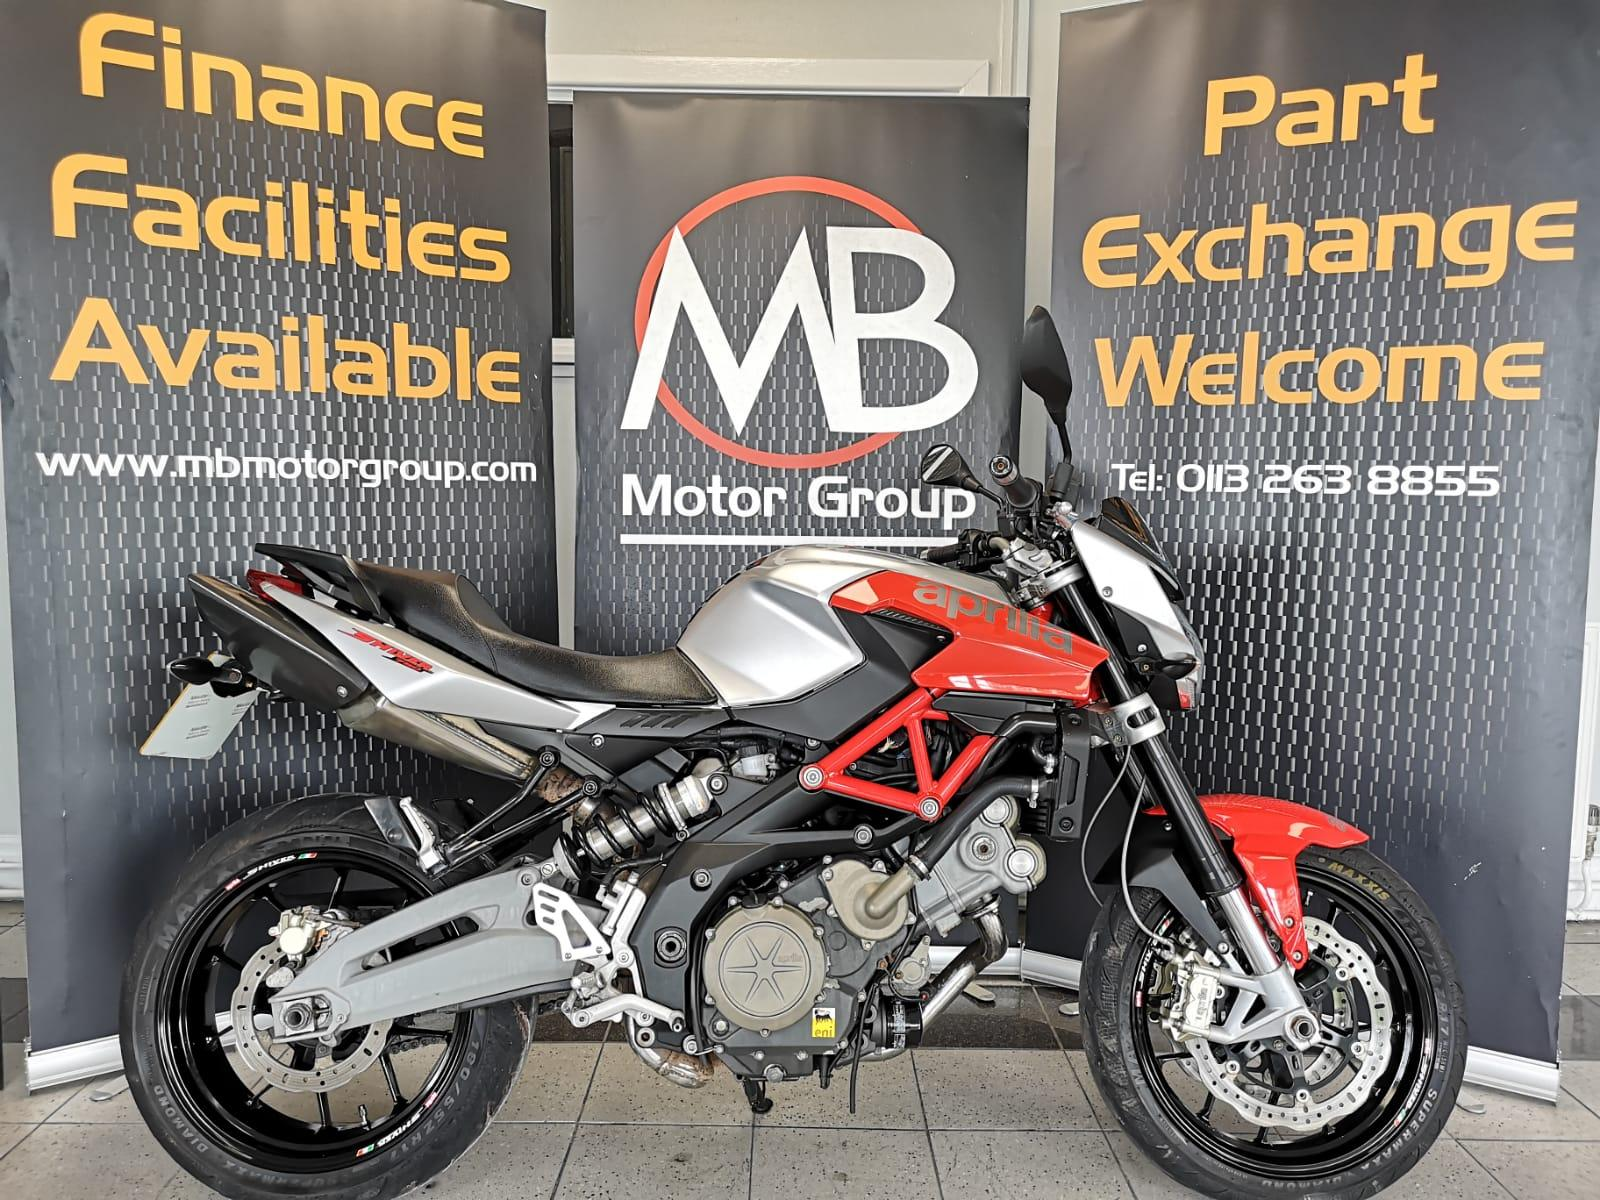 Aprilia Shiver Exhaust for sale in UK | View 57 bargains